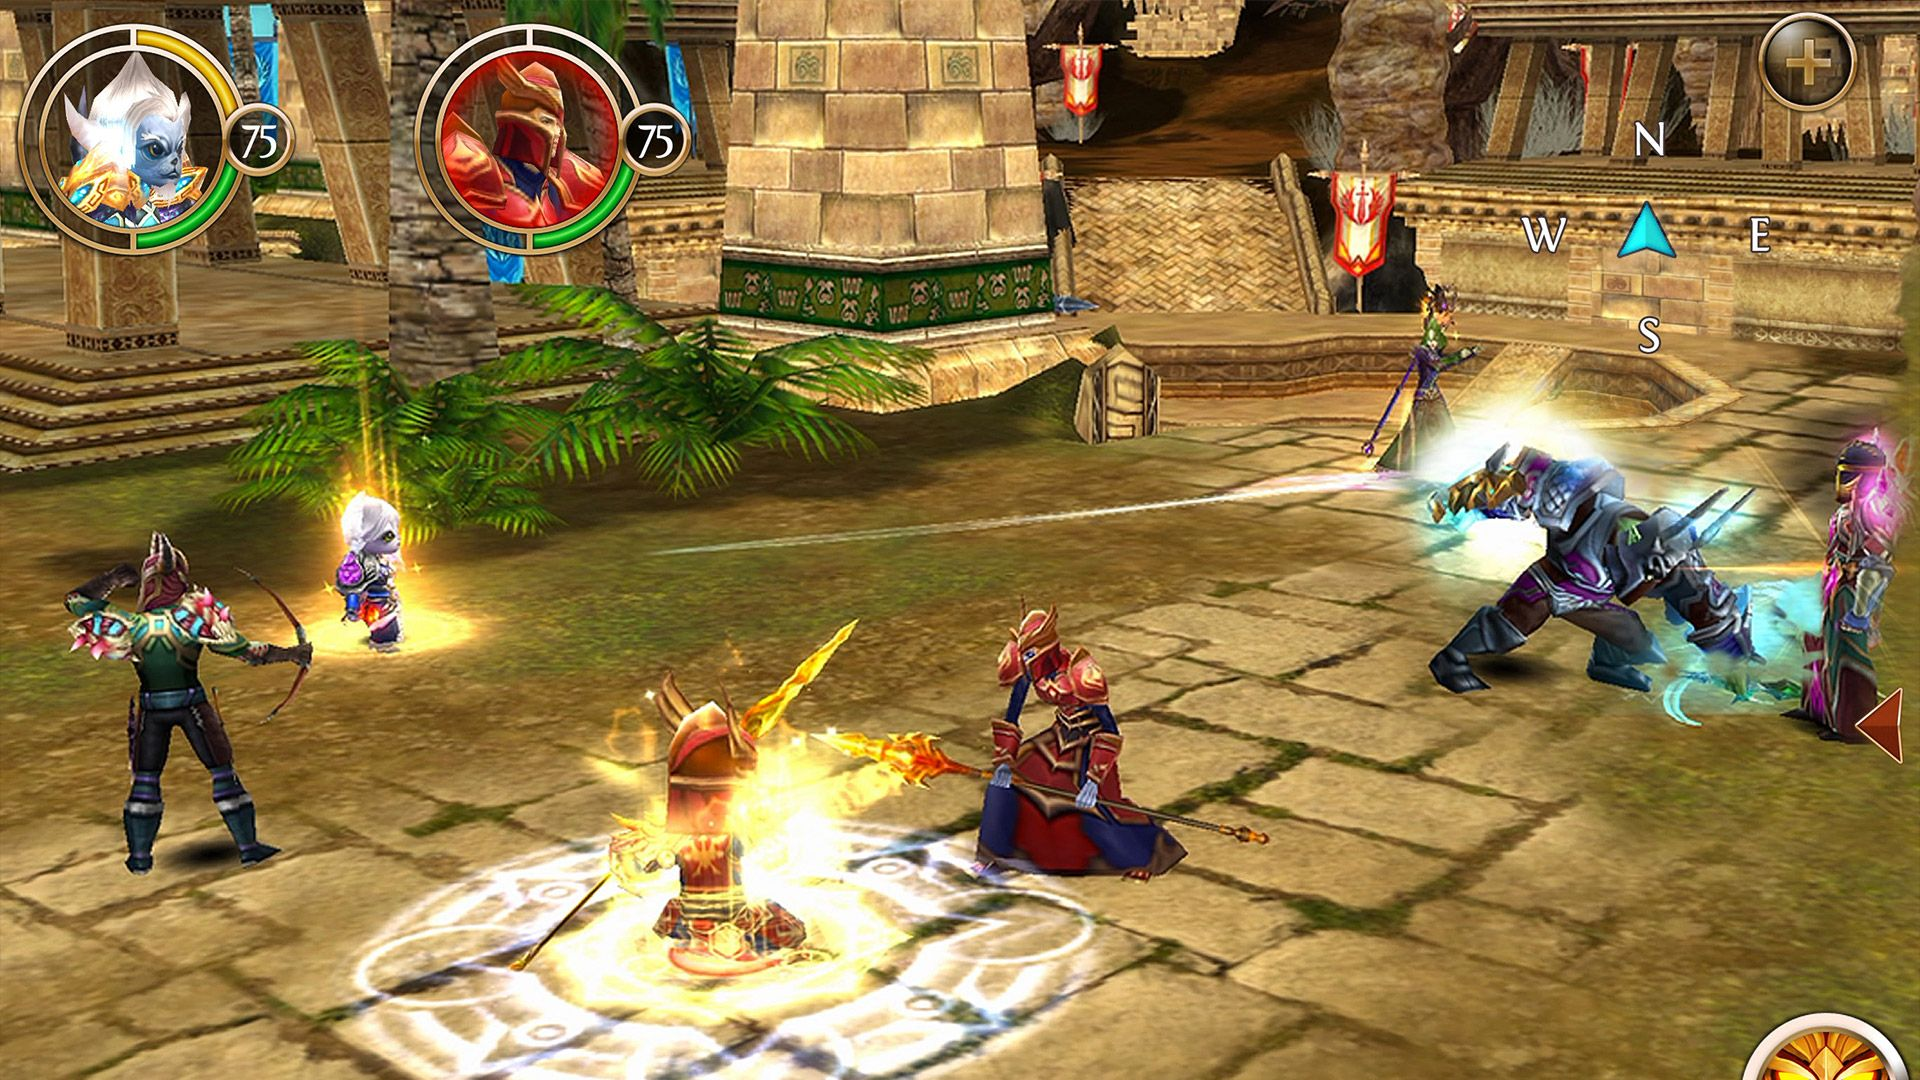 10 Best Mmorpg Of All Time According To Metacritic Game Rant